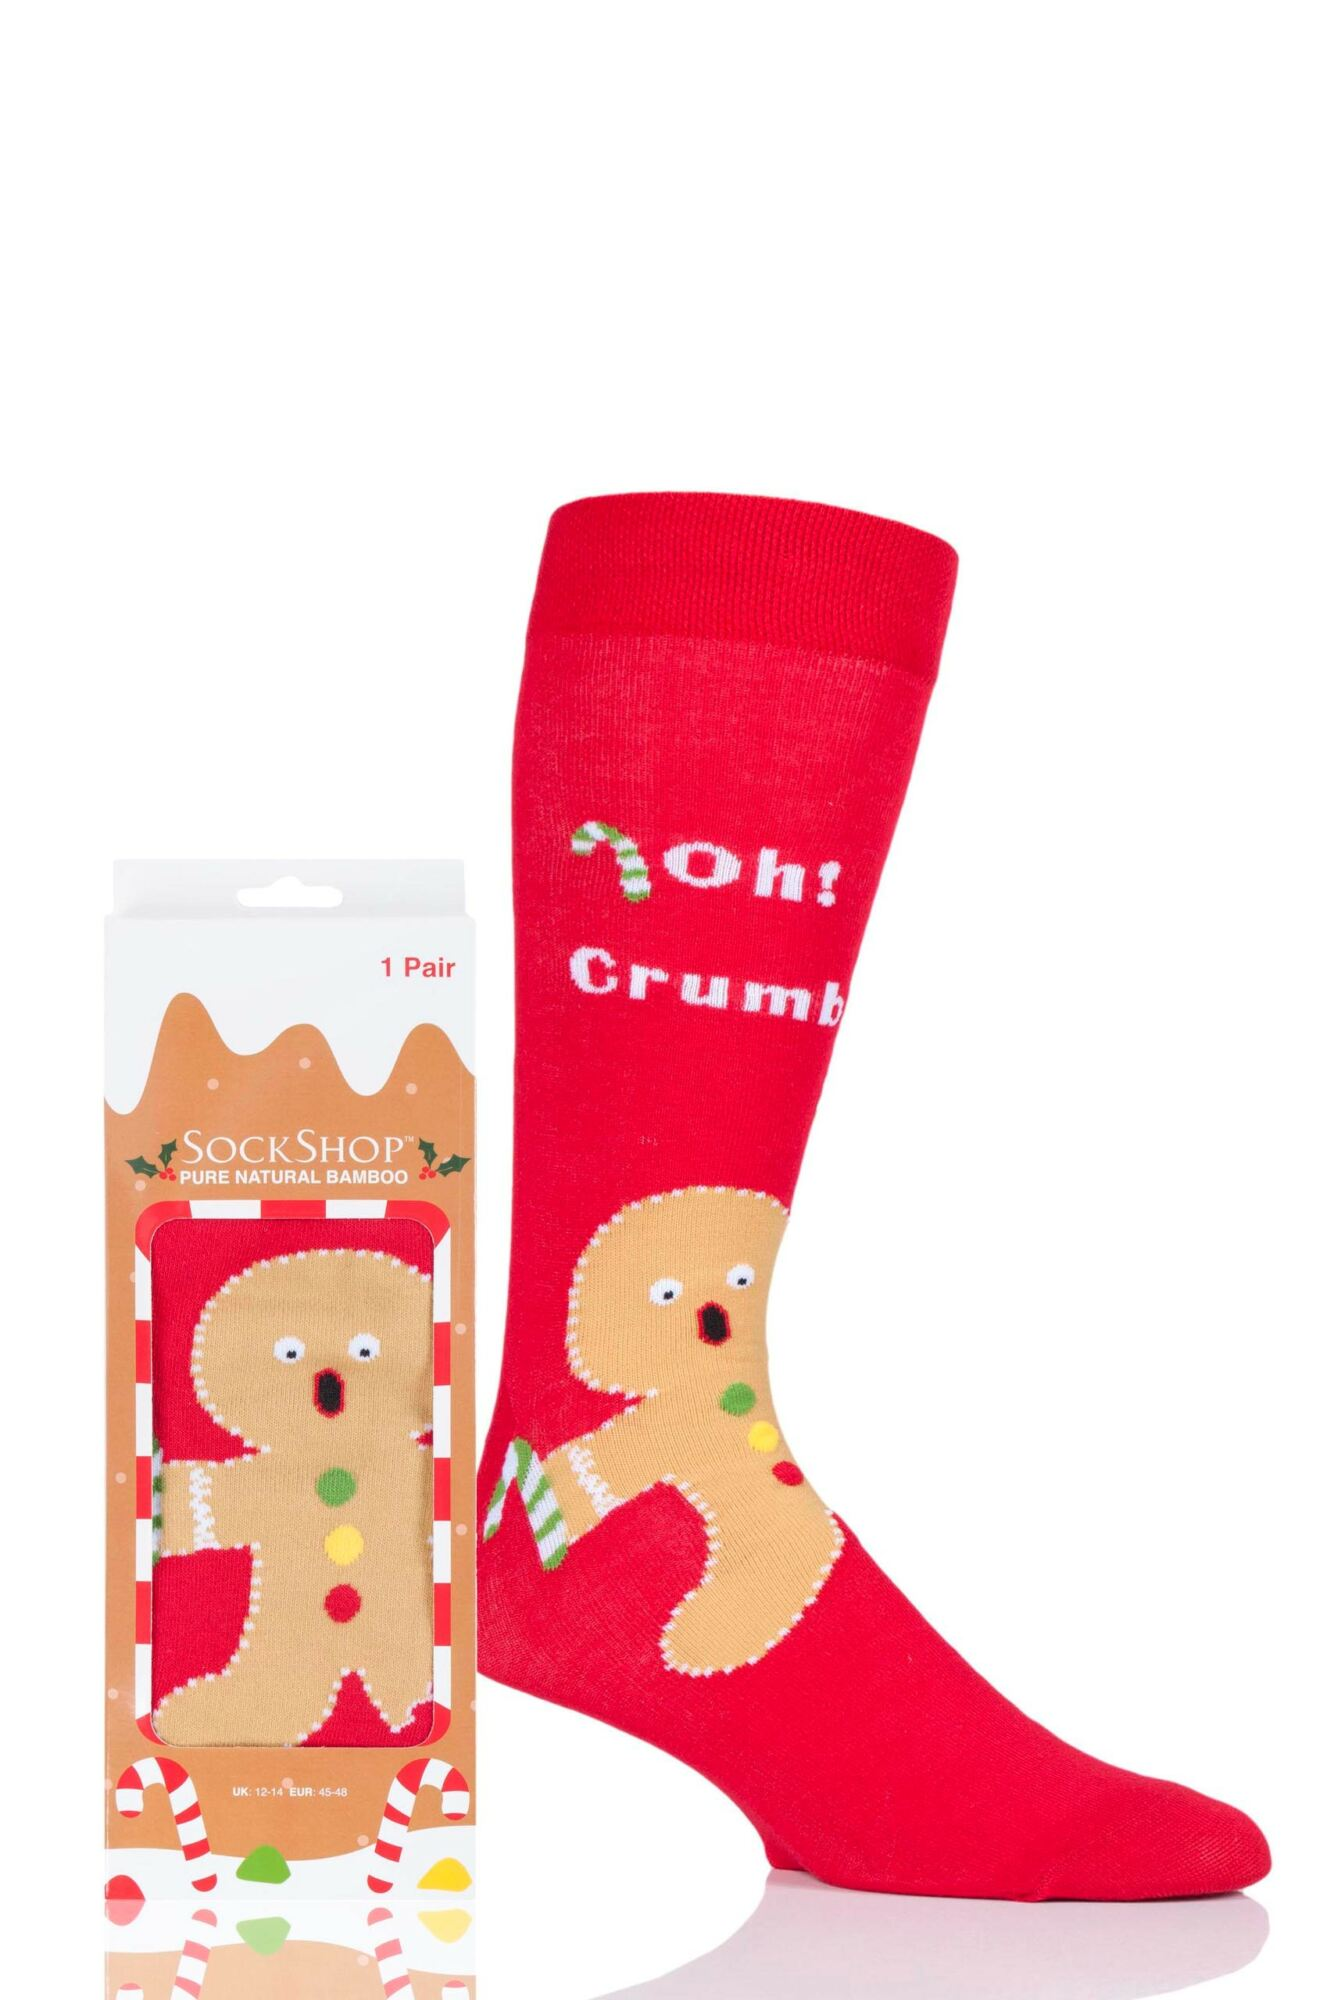 1 Pair Bamboo Gingerbread Man Christmas Gift Boxed Socks Unisex - Lazy Panda